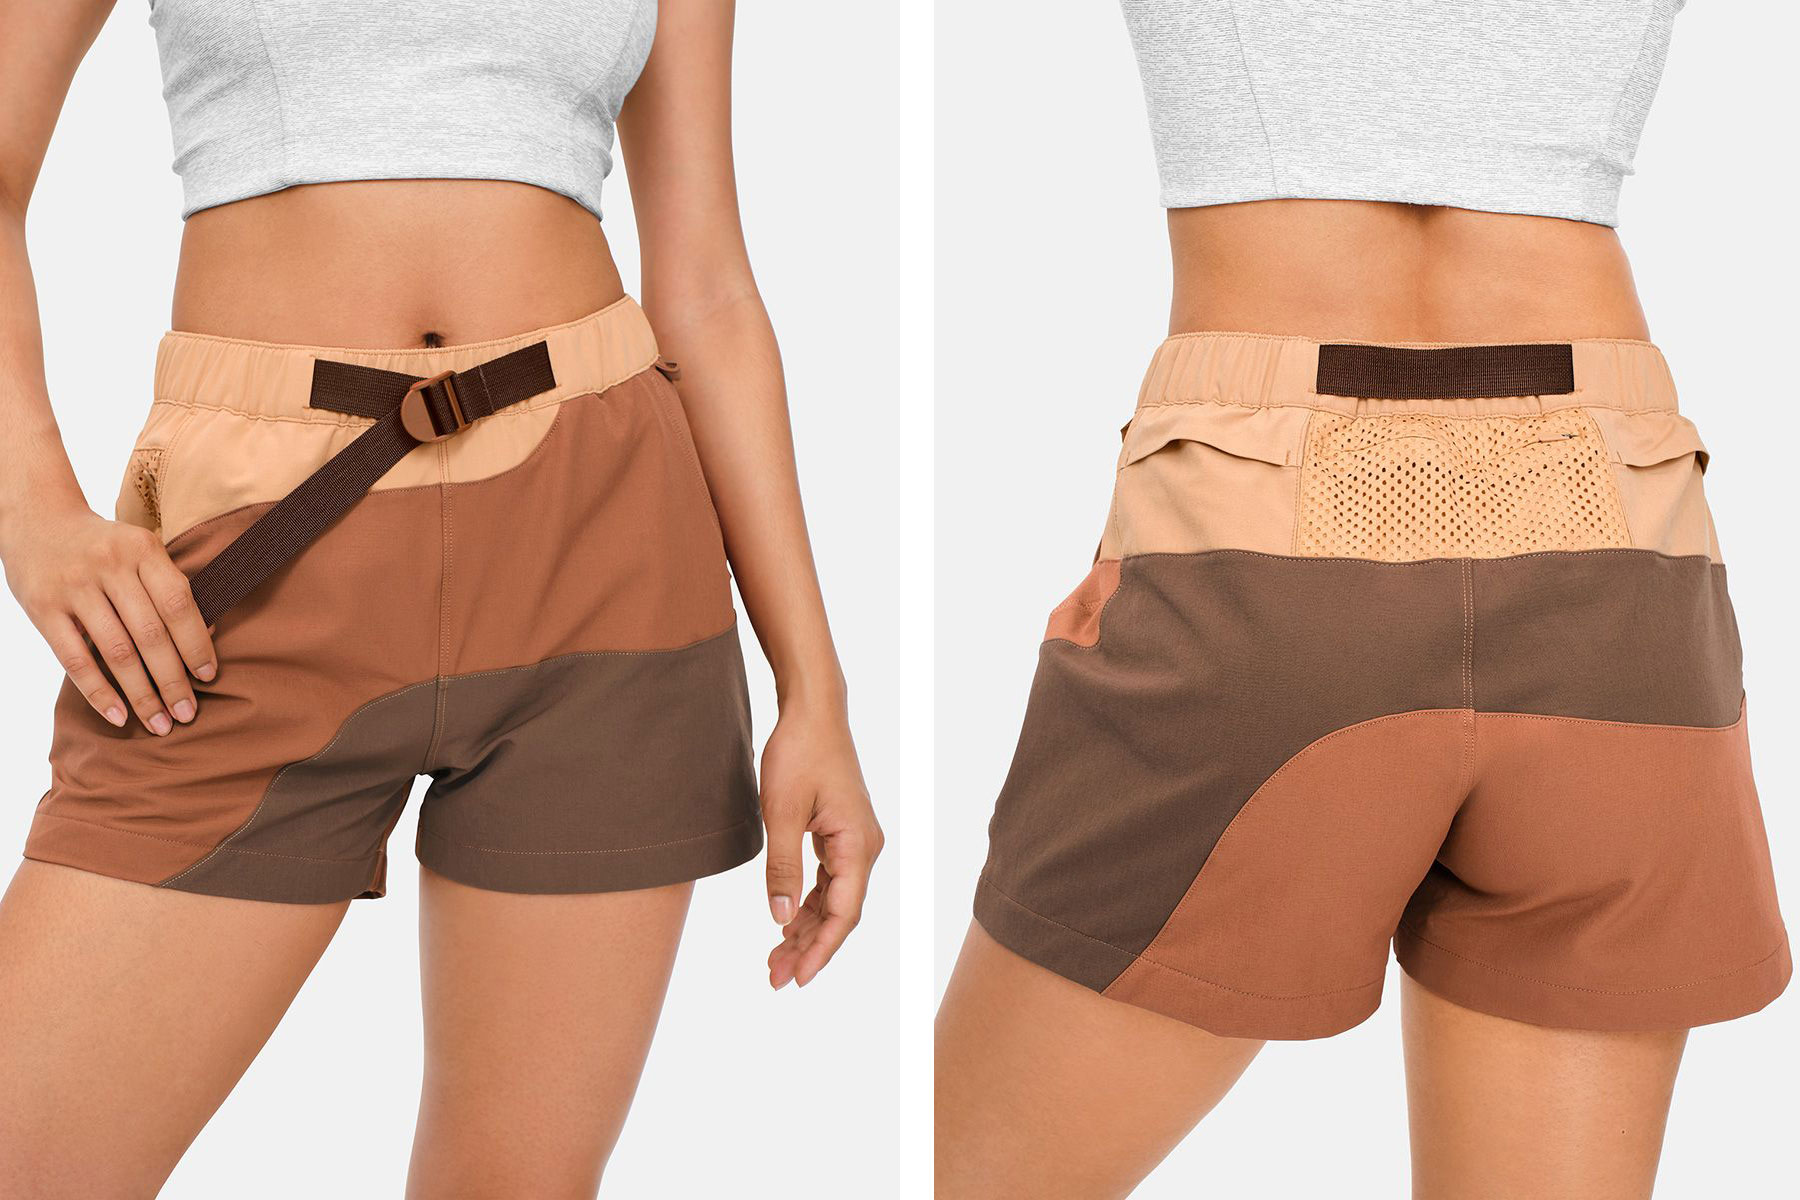 Brown patterned hiking shorts for women